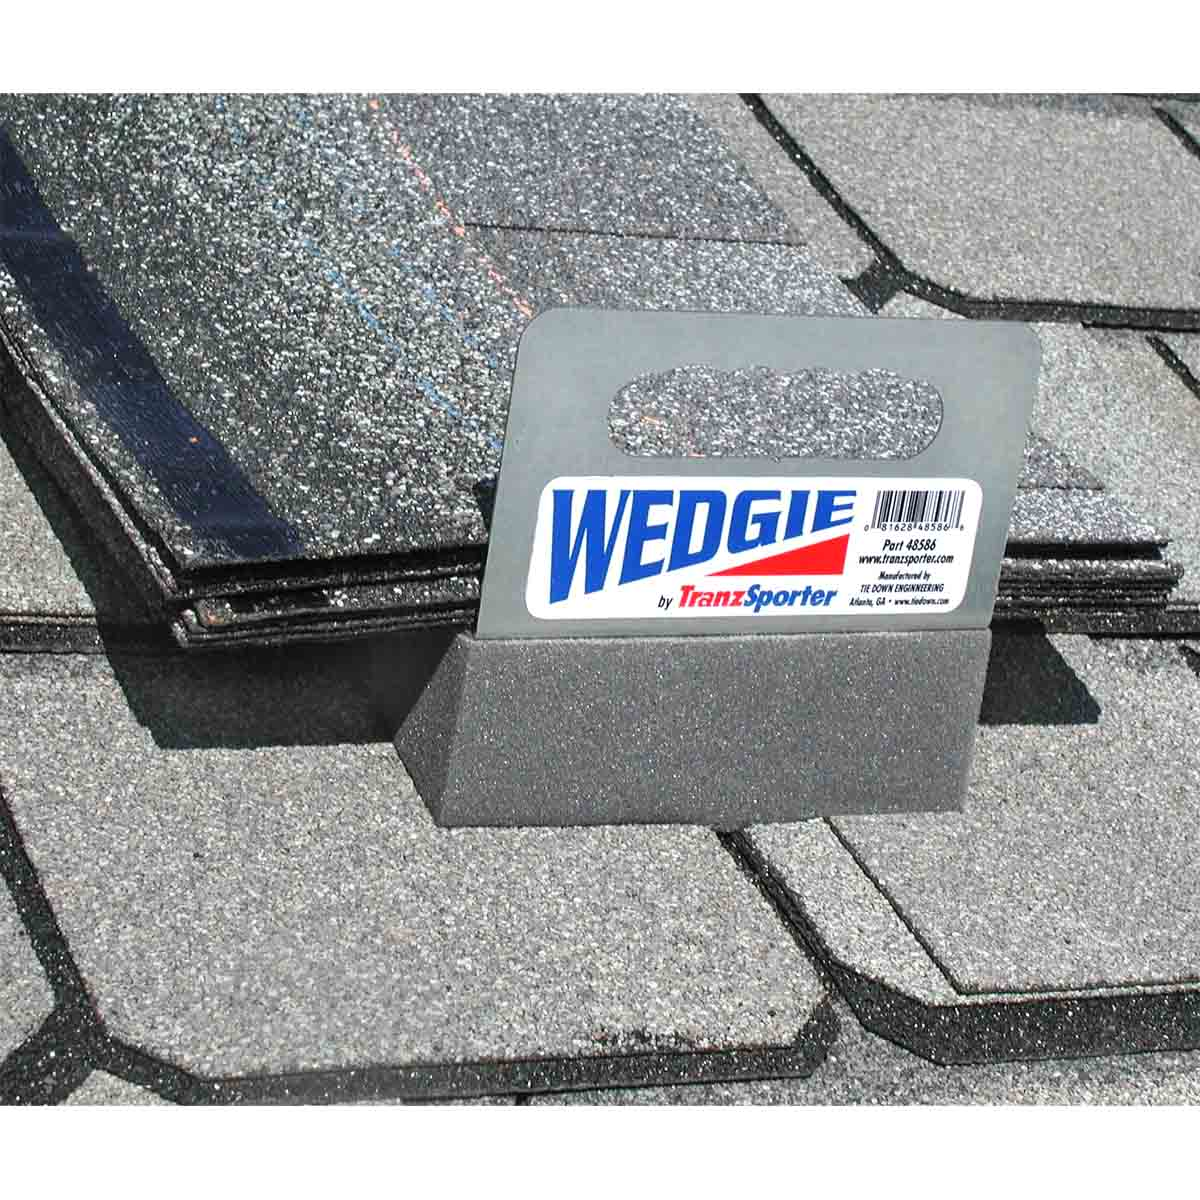 Shingle Wedgie Pad